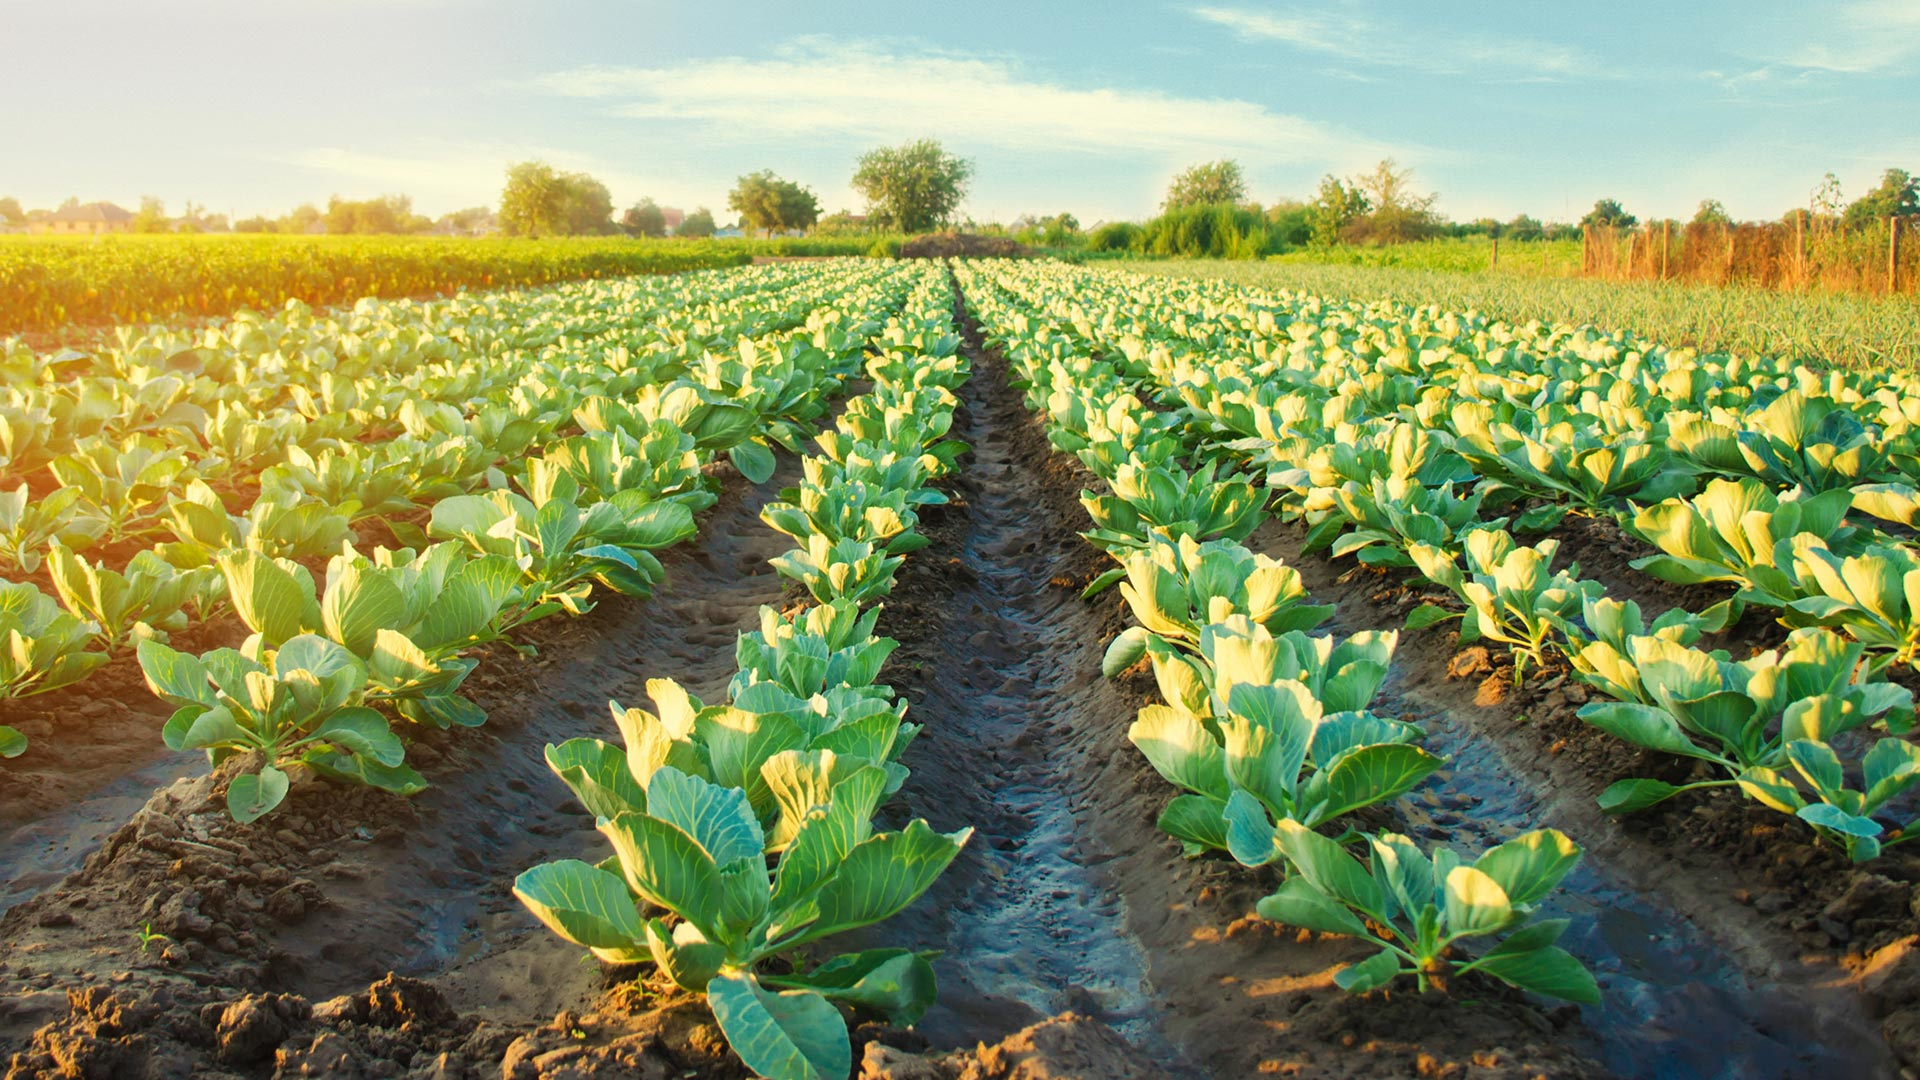 EU relaxes antitrust restrictions in the food and agriculture sectors